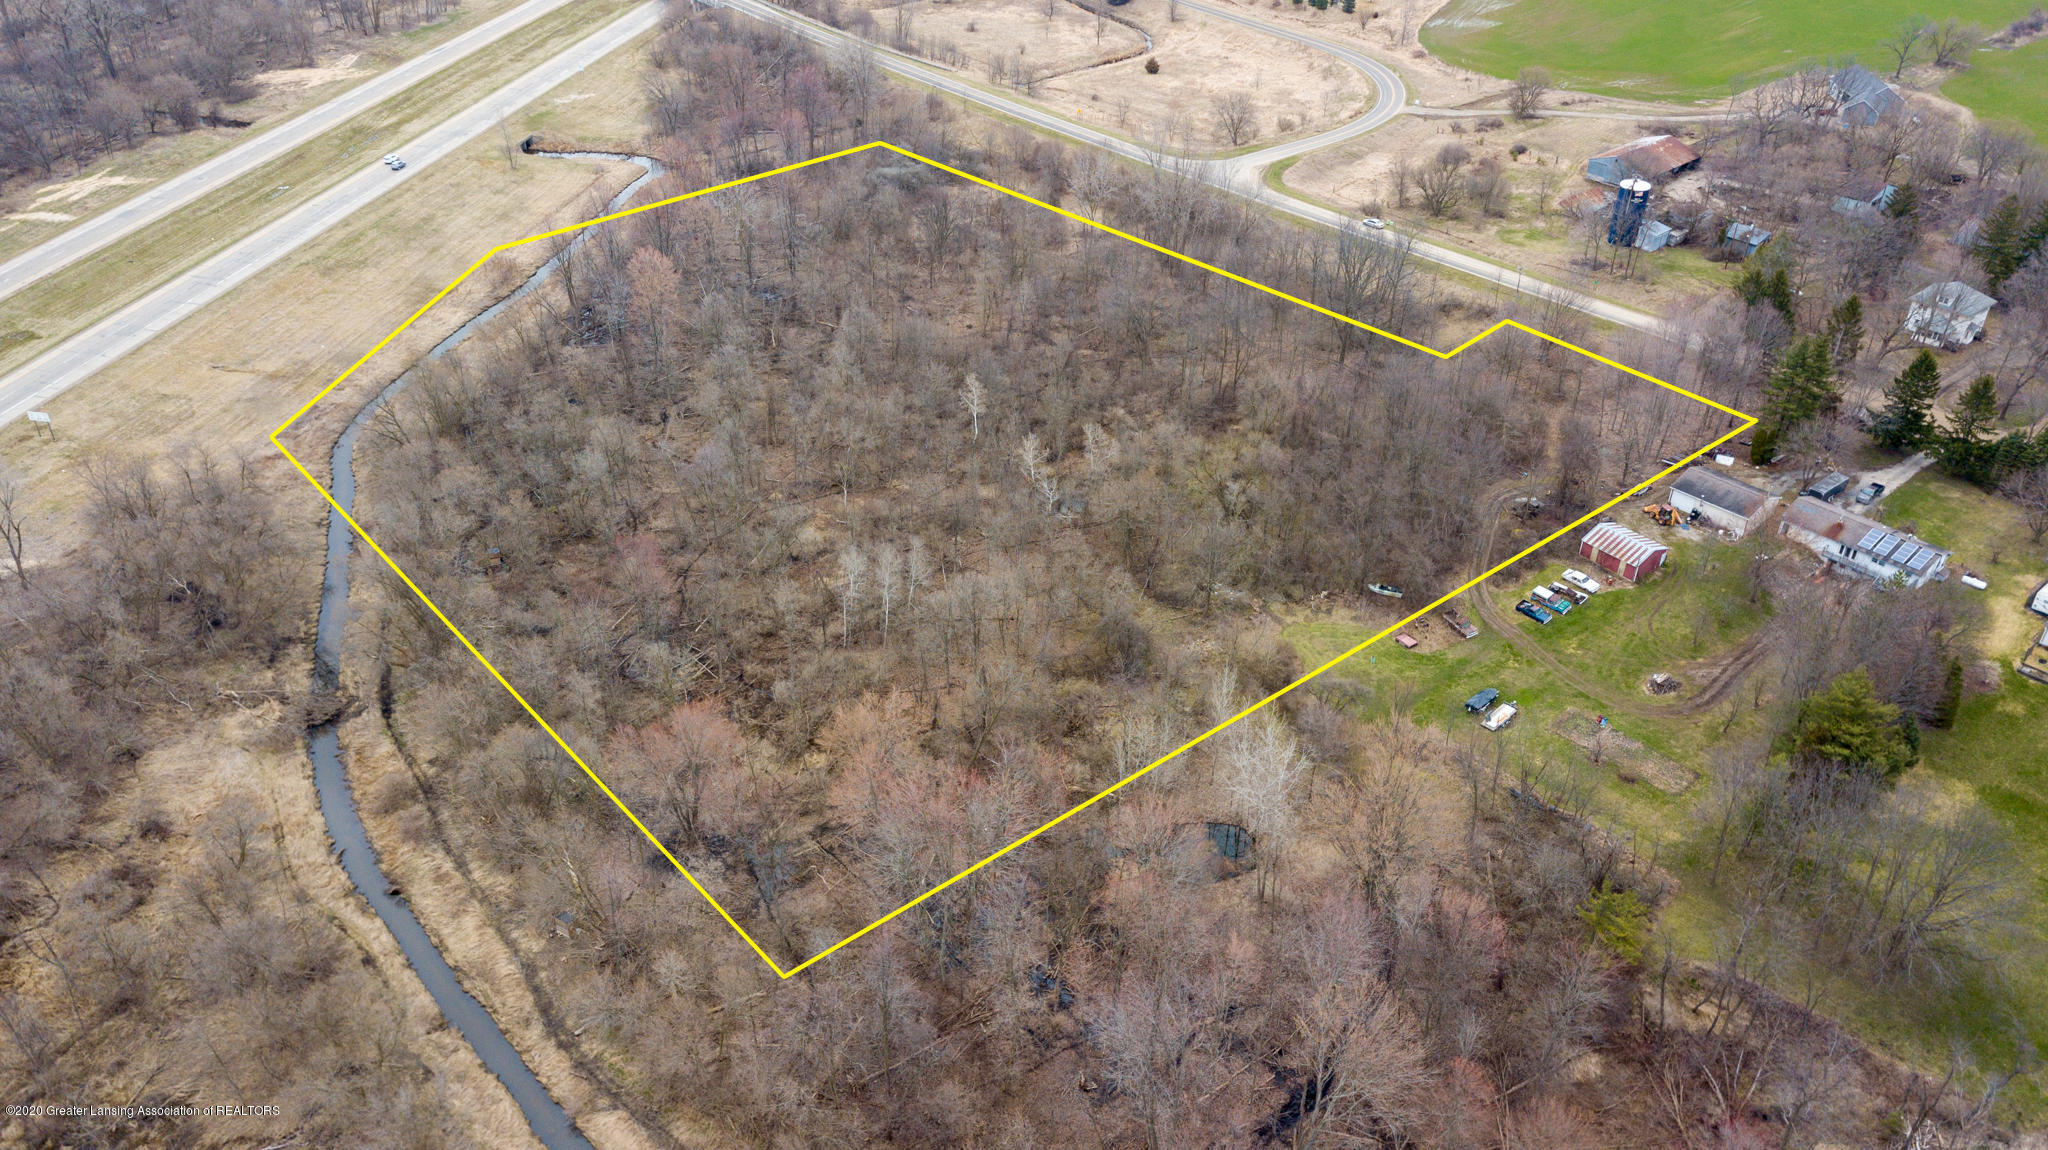 Vl S Lowell Rd - Lowell_Rd_VACANT_BROCK-9 - 13